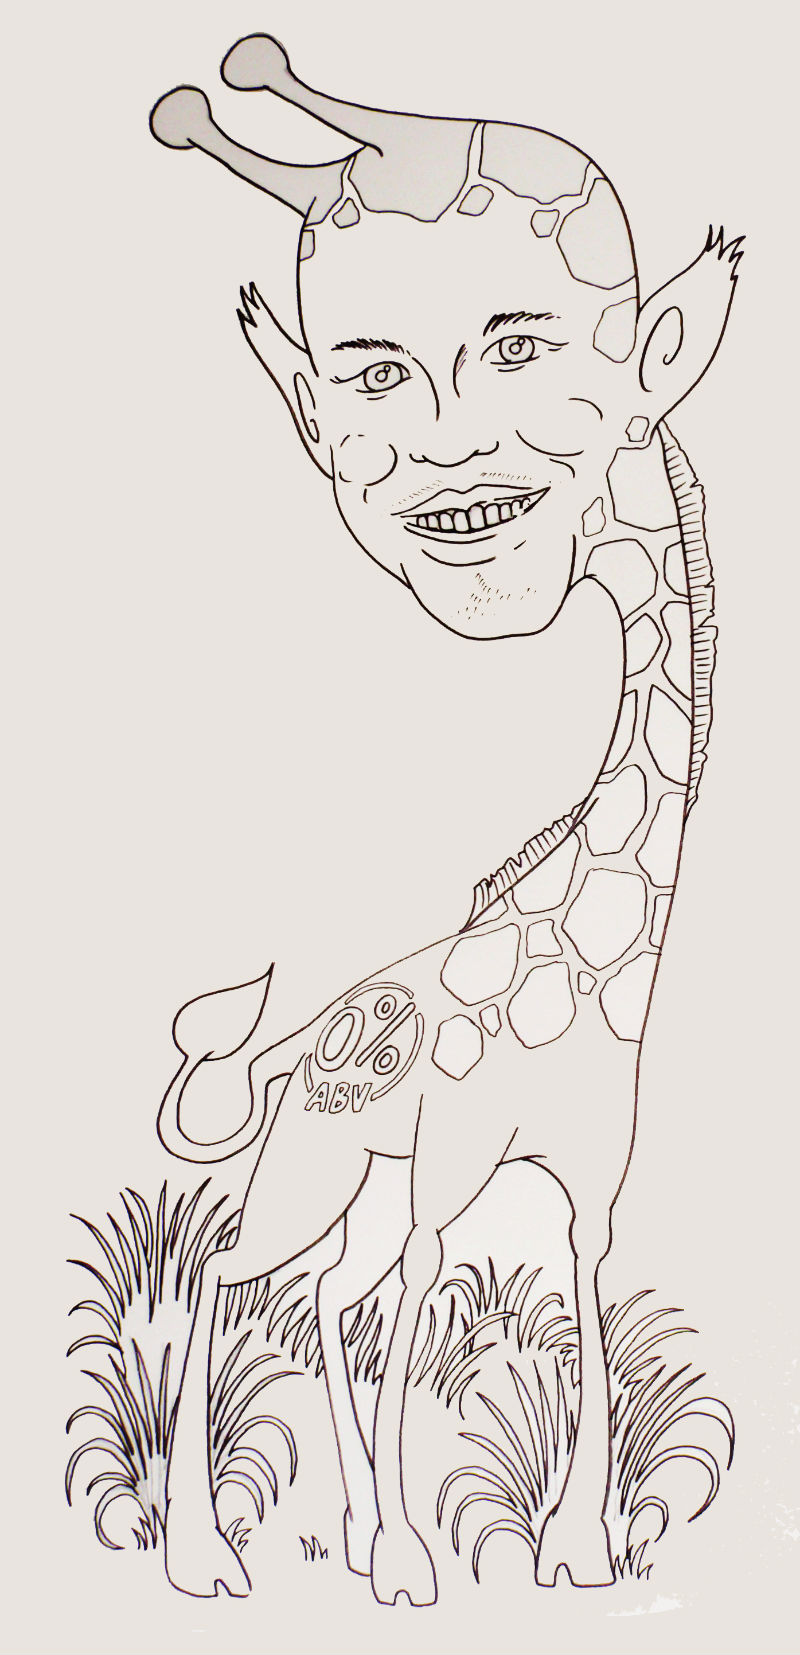 Someone drew ME a picture–Personable Giraffe by Simon from Ideas Garden